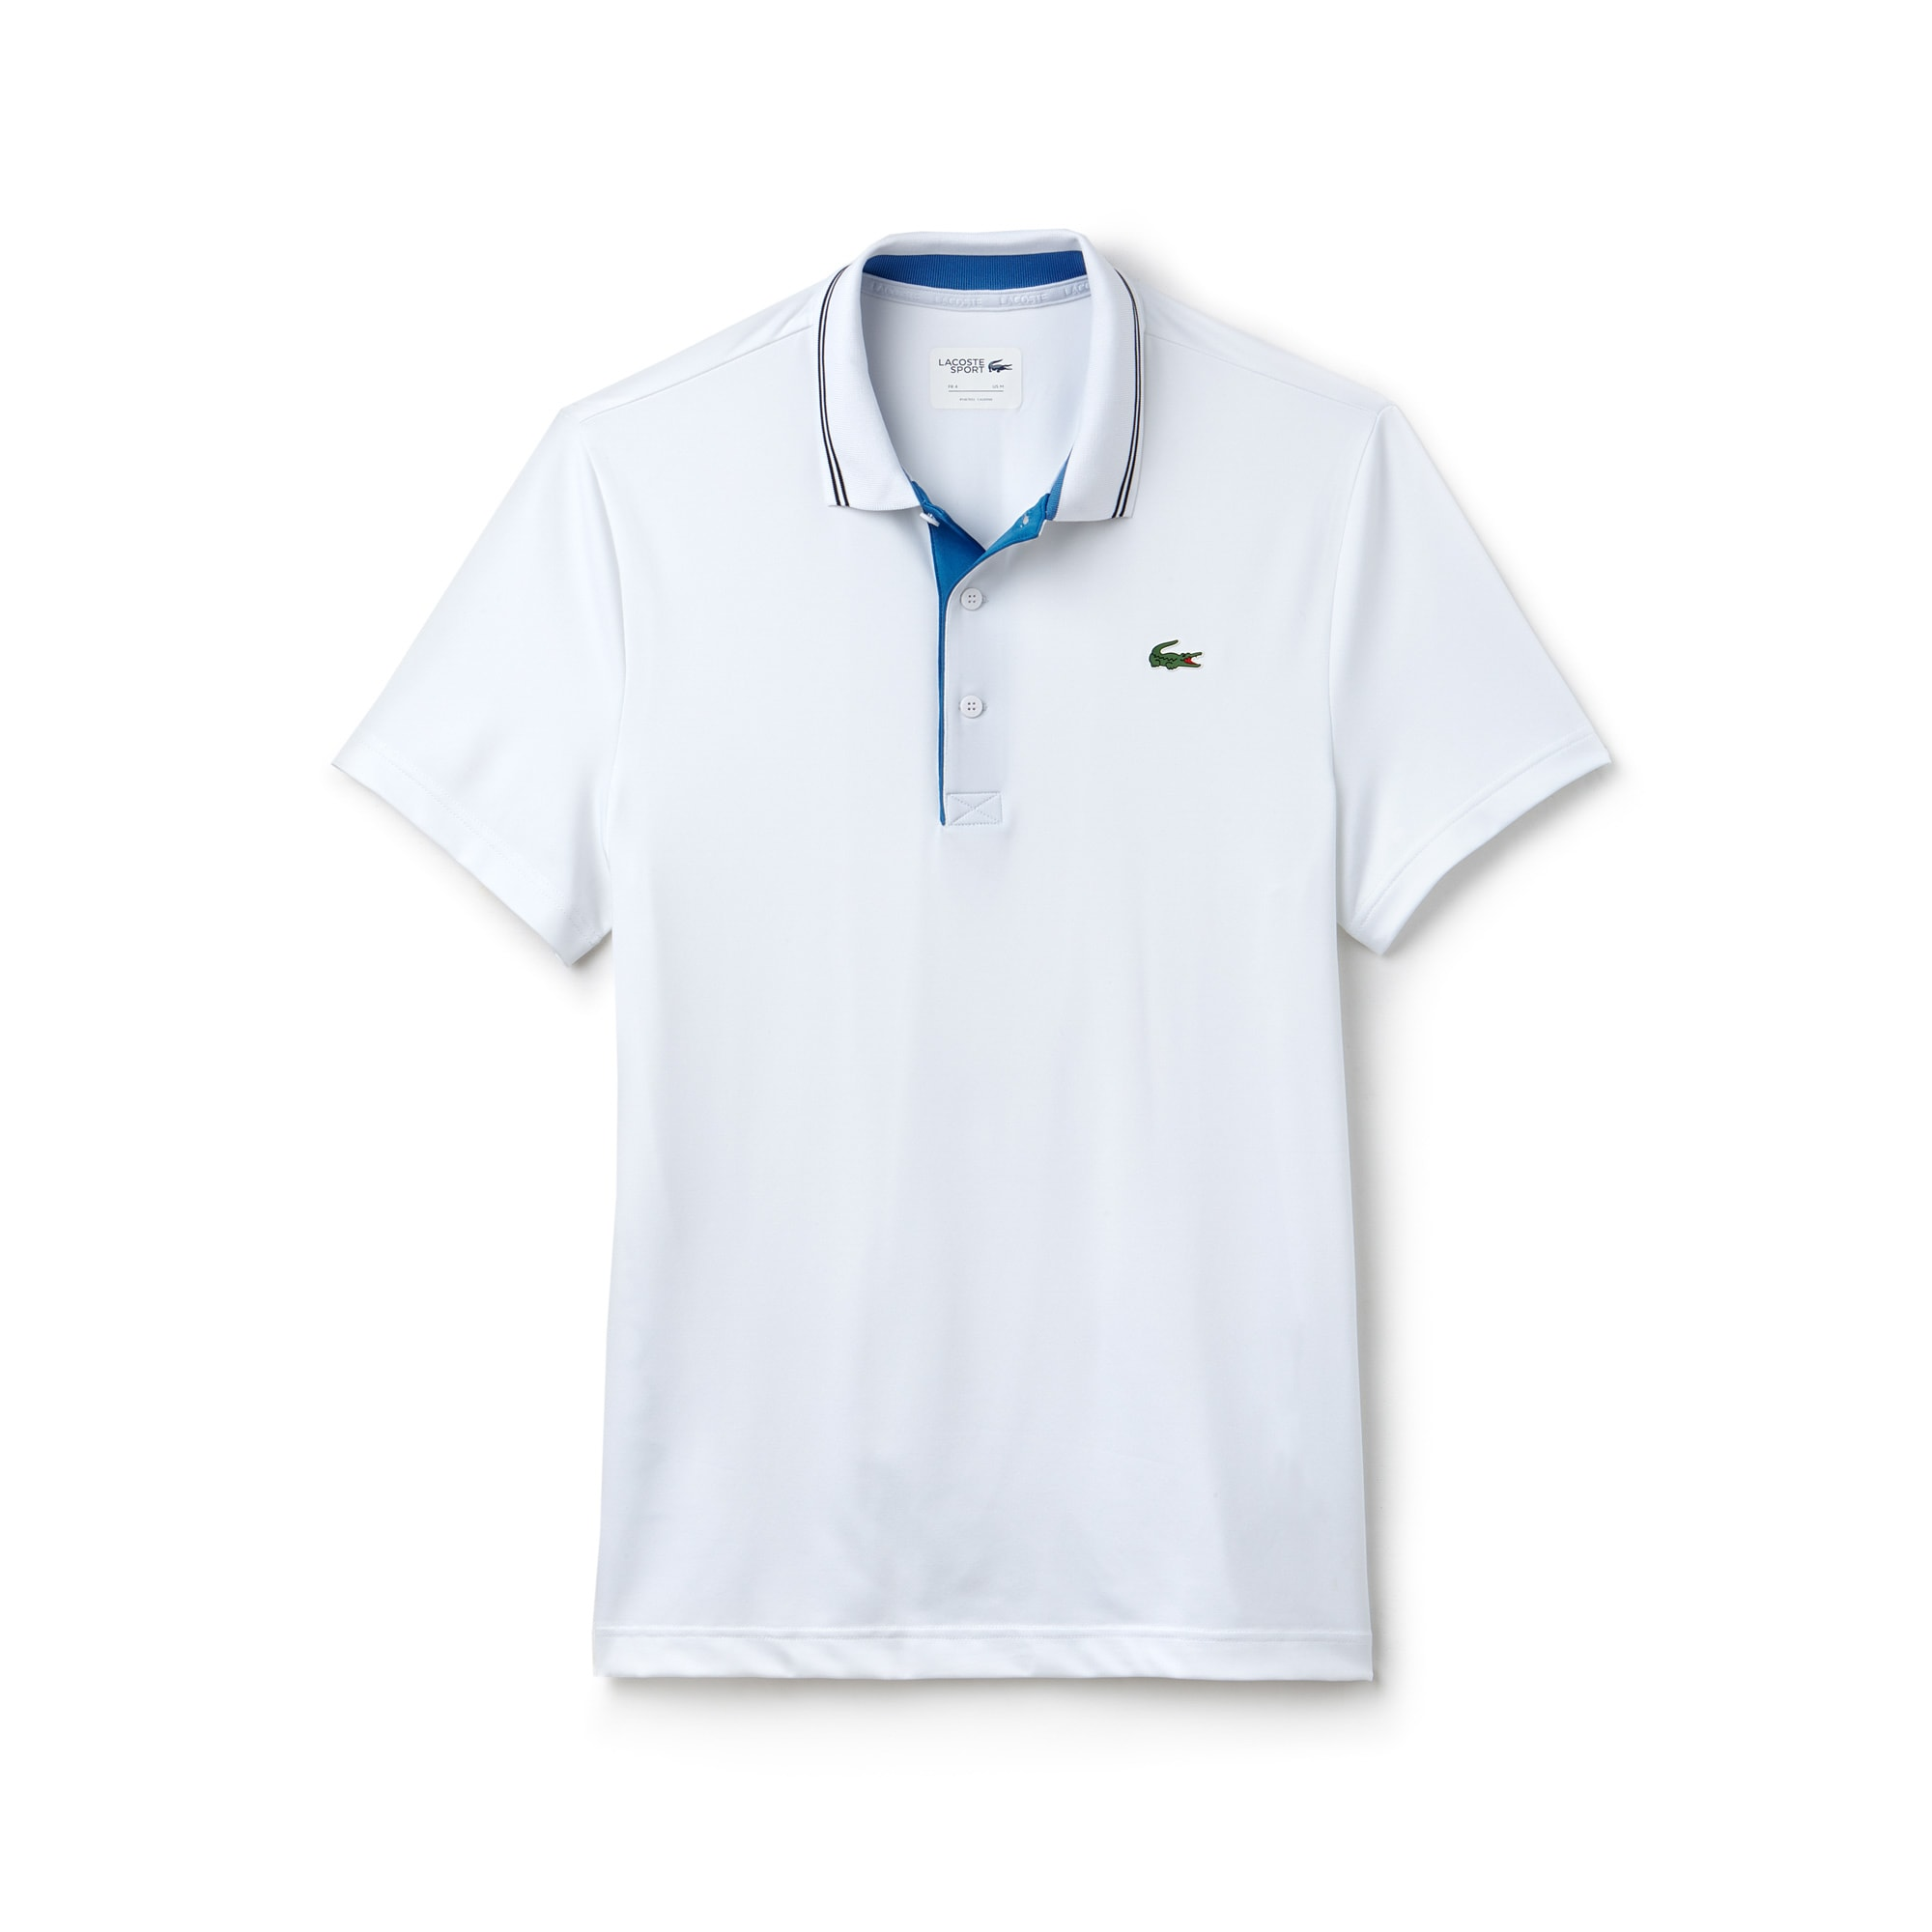 Mens 라코스테 Lacoste SPORT Lettering Stretch Technical Jersey Golf Polo Shirt,white/medway-navy blue